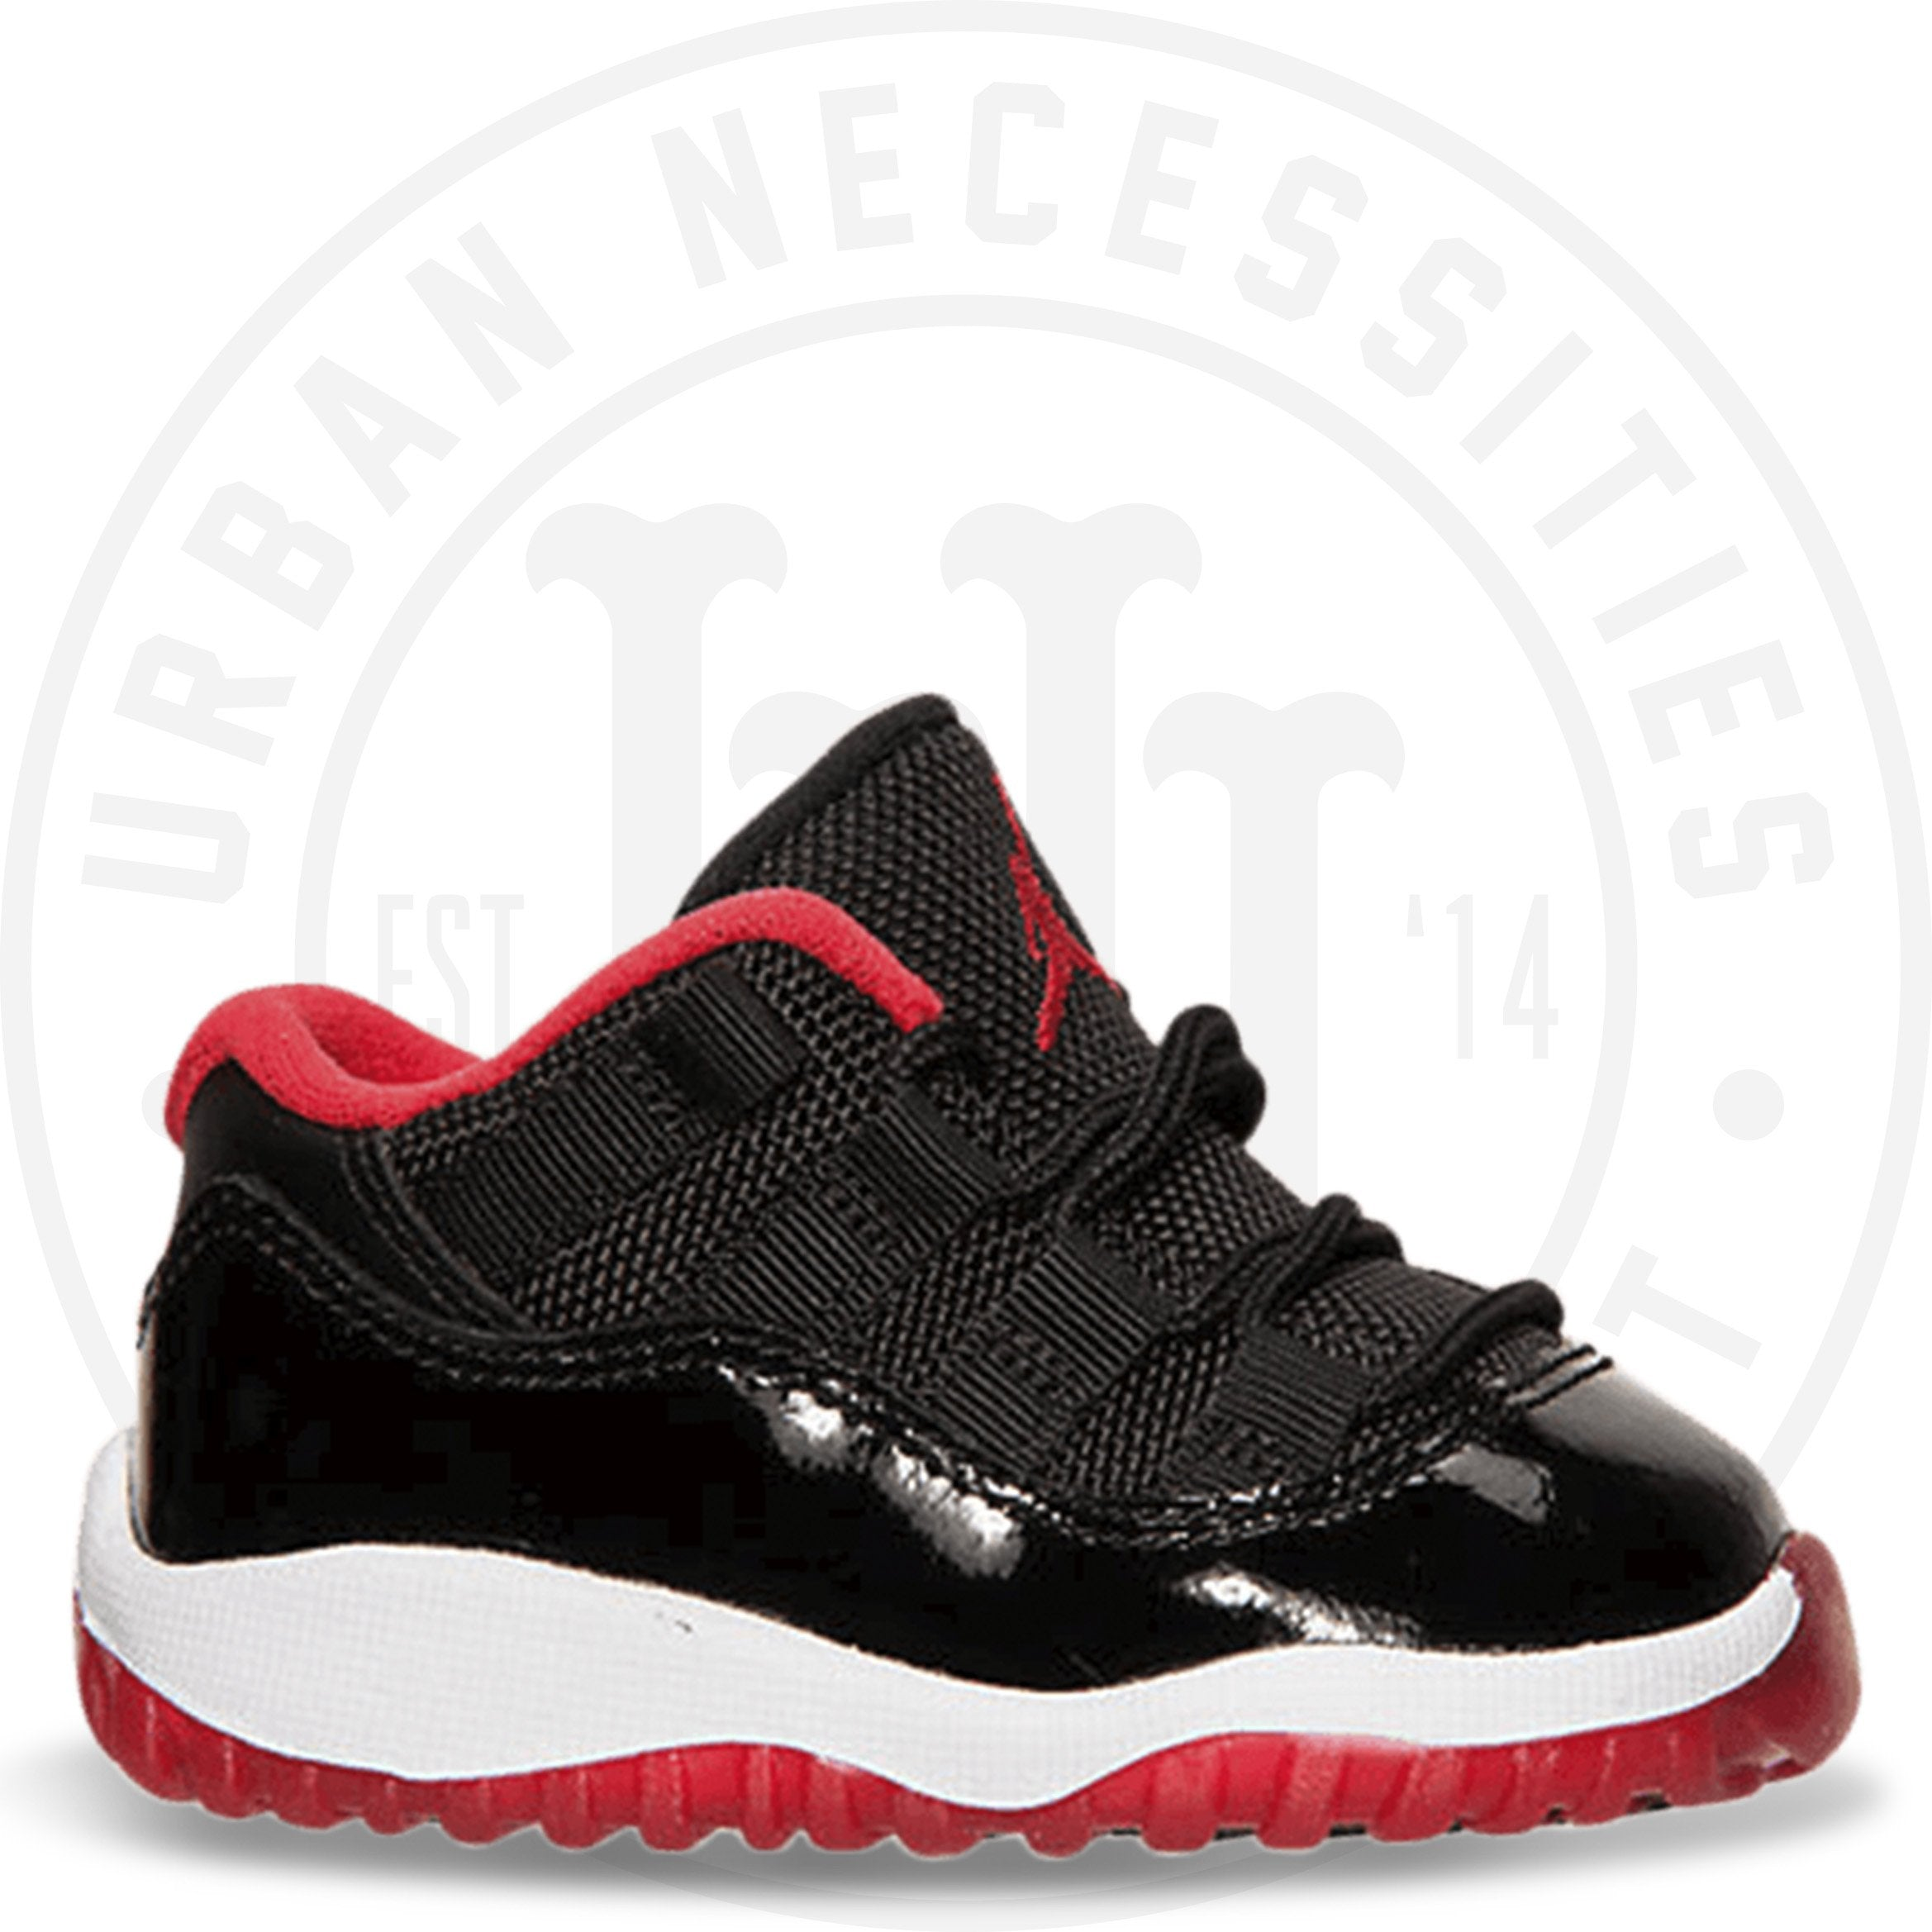 san francisco aaefe 4c960 Air Jordan 11 Retro Low BT TD  Bred  - 505836 012-Urban Necessities